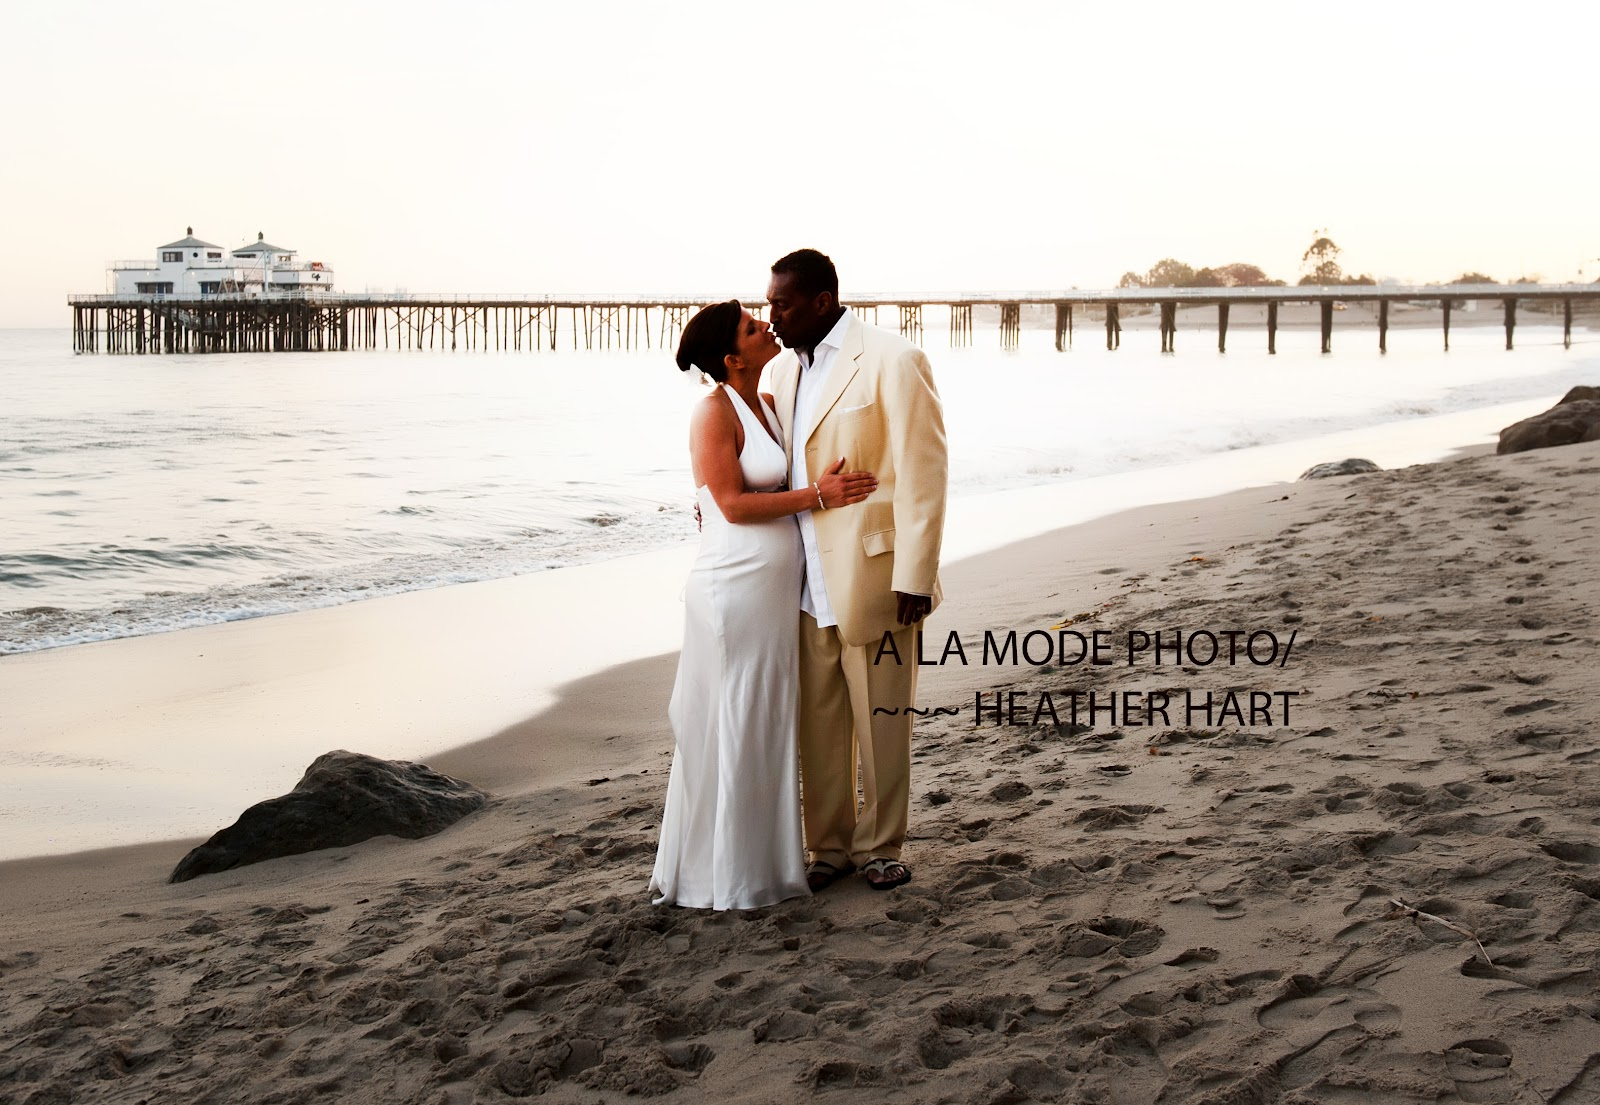 Sweet Came From St Louis Missouri To Get Married At Sunset In Malibu The Beach Found Me I Referred Them Inn